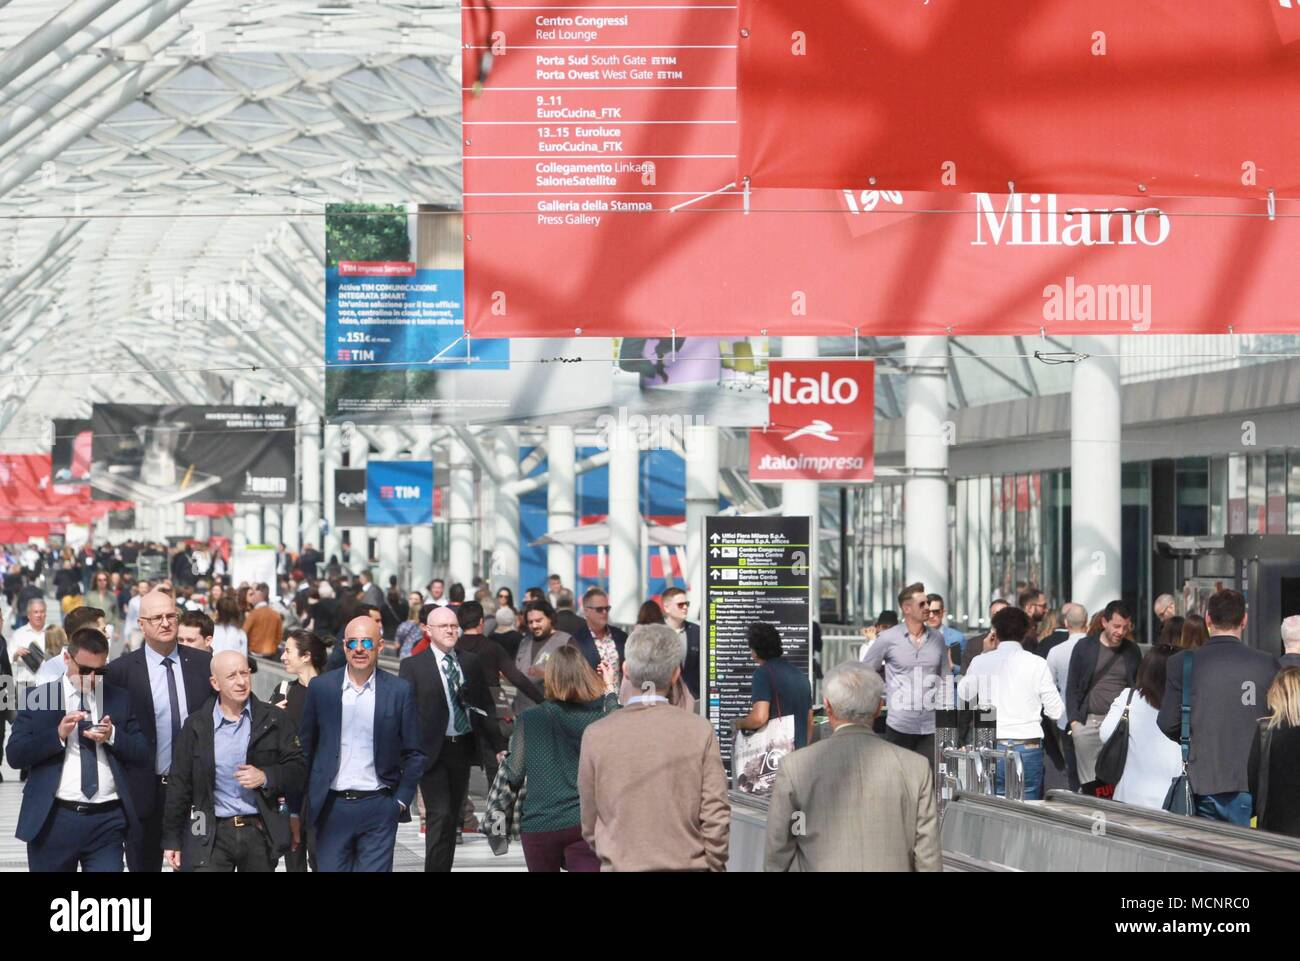 https://c8.alamy.com/comp/MCNRC0/milan-italy-17th-april-2018-inauguration-of-the-salone-del-mobile-2018-edition-at-the-rho-pero-fair-crowd-on-the-day-of-the-opening-alberto-cattaneo-milan-2018-04-17-ps-the-photo-can-be-used-respecting-the-context-in-which-it-was-taken-and-without-intent-defamatory-of-the-decor-of-the-people-represented-credit-independent-photo-agency-srlalamy-live-news-MCNRC0.jpg